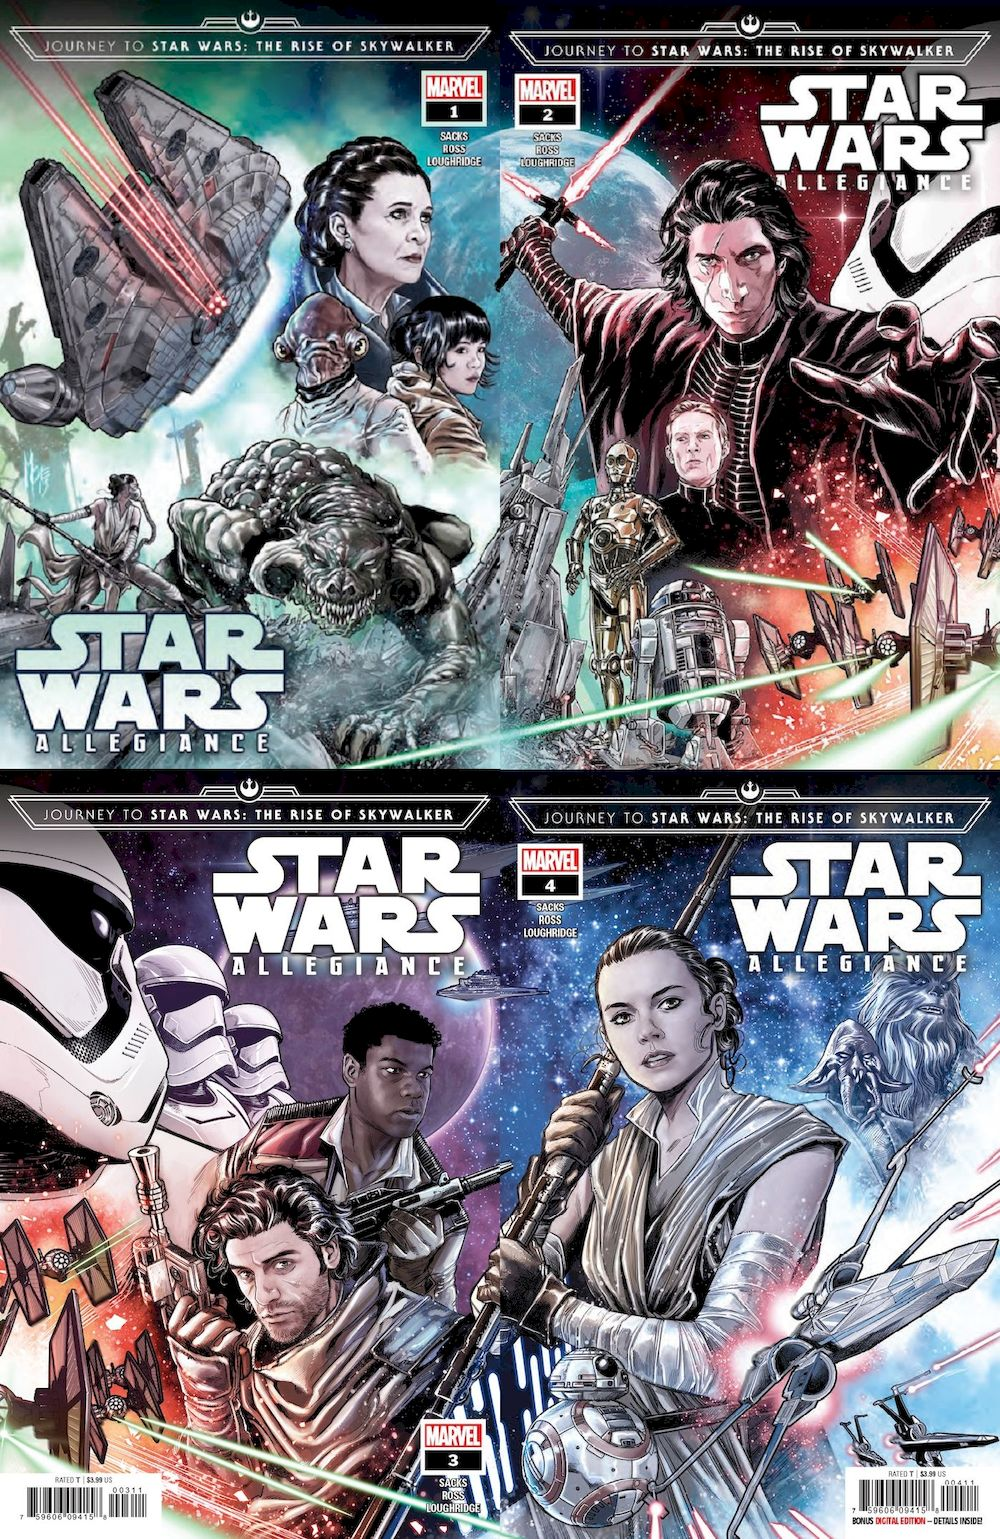 JOURNEY STAR WARS RISE SKYWALKER ALLEGIANCE #1 - #4 SET